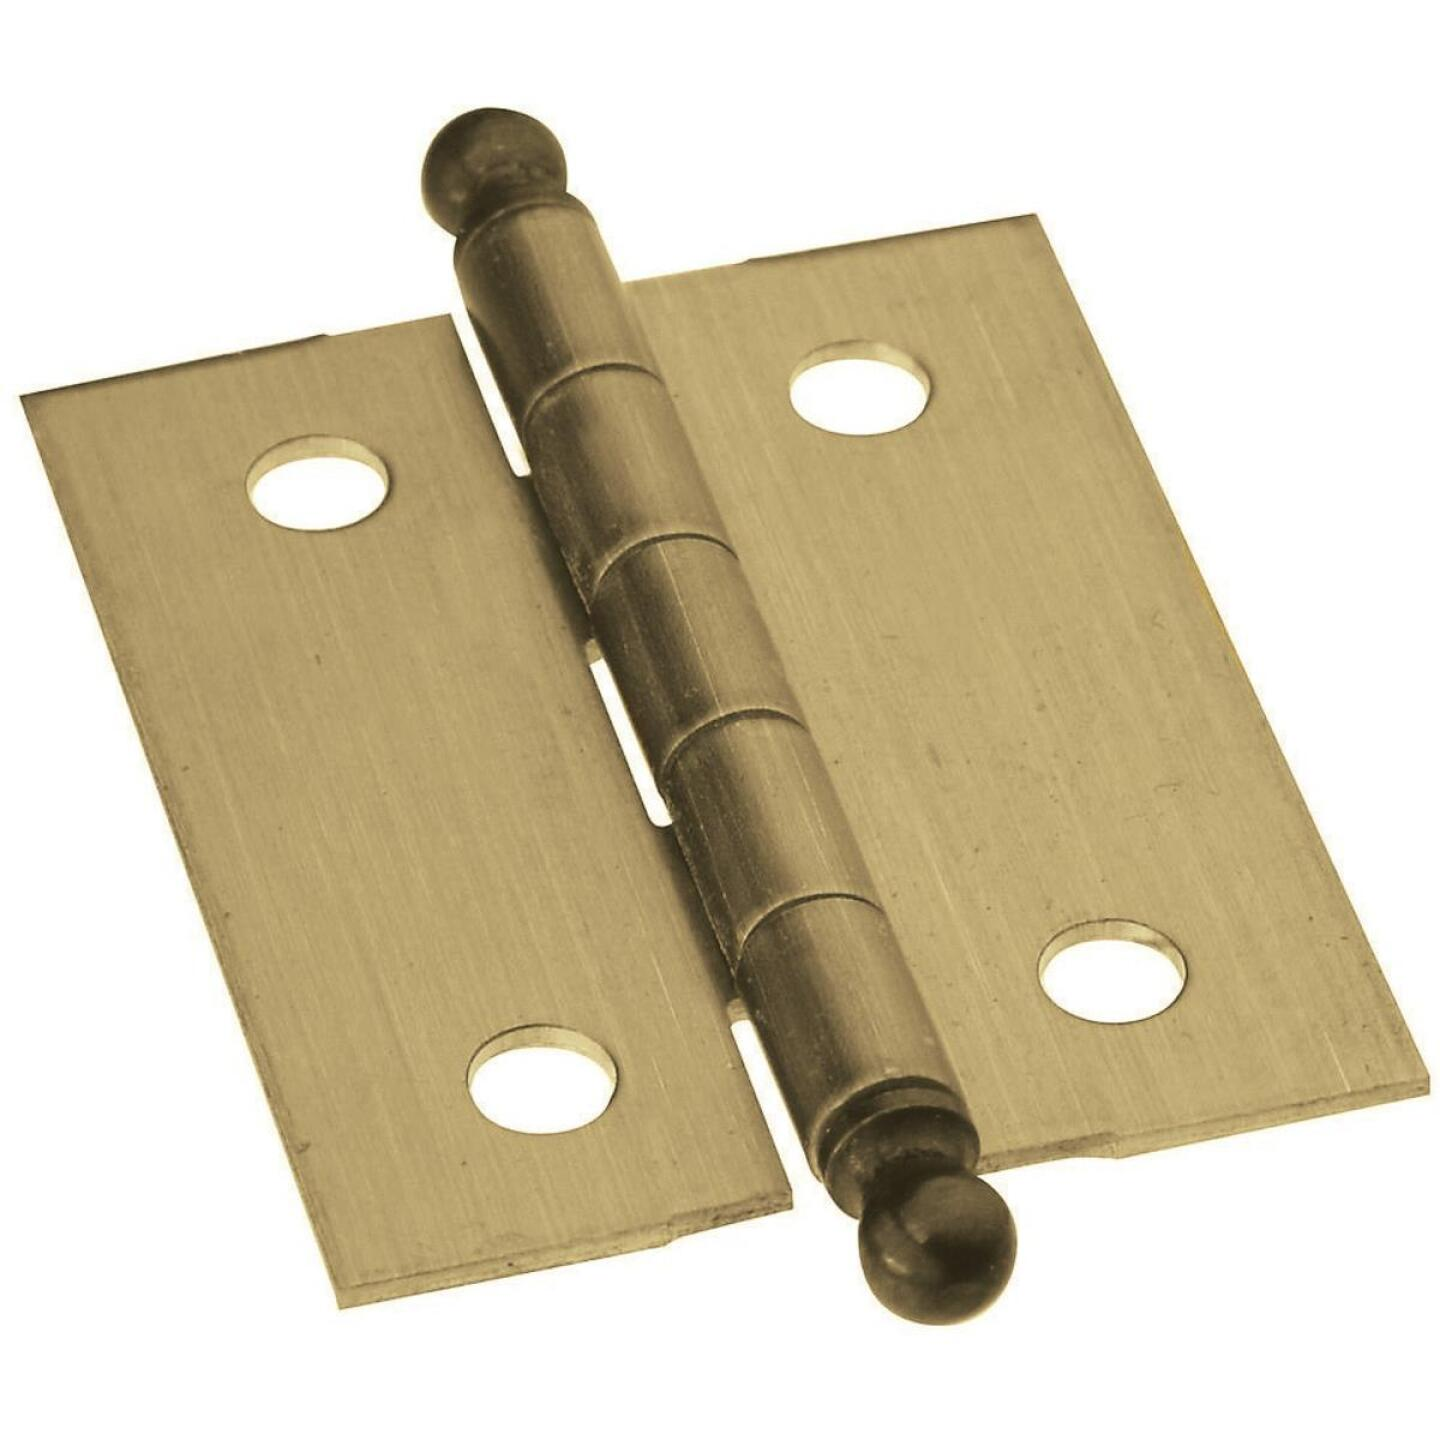 National 1-1/4 In. x 1-1/2 In. Antique Brass Ball Tip Hinge (2-Pack) Image 1